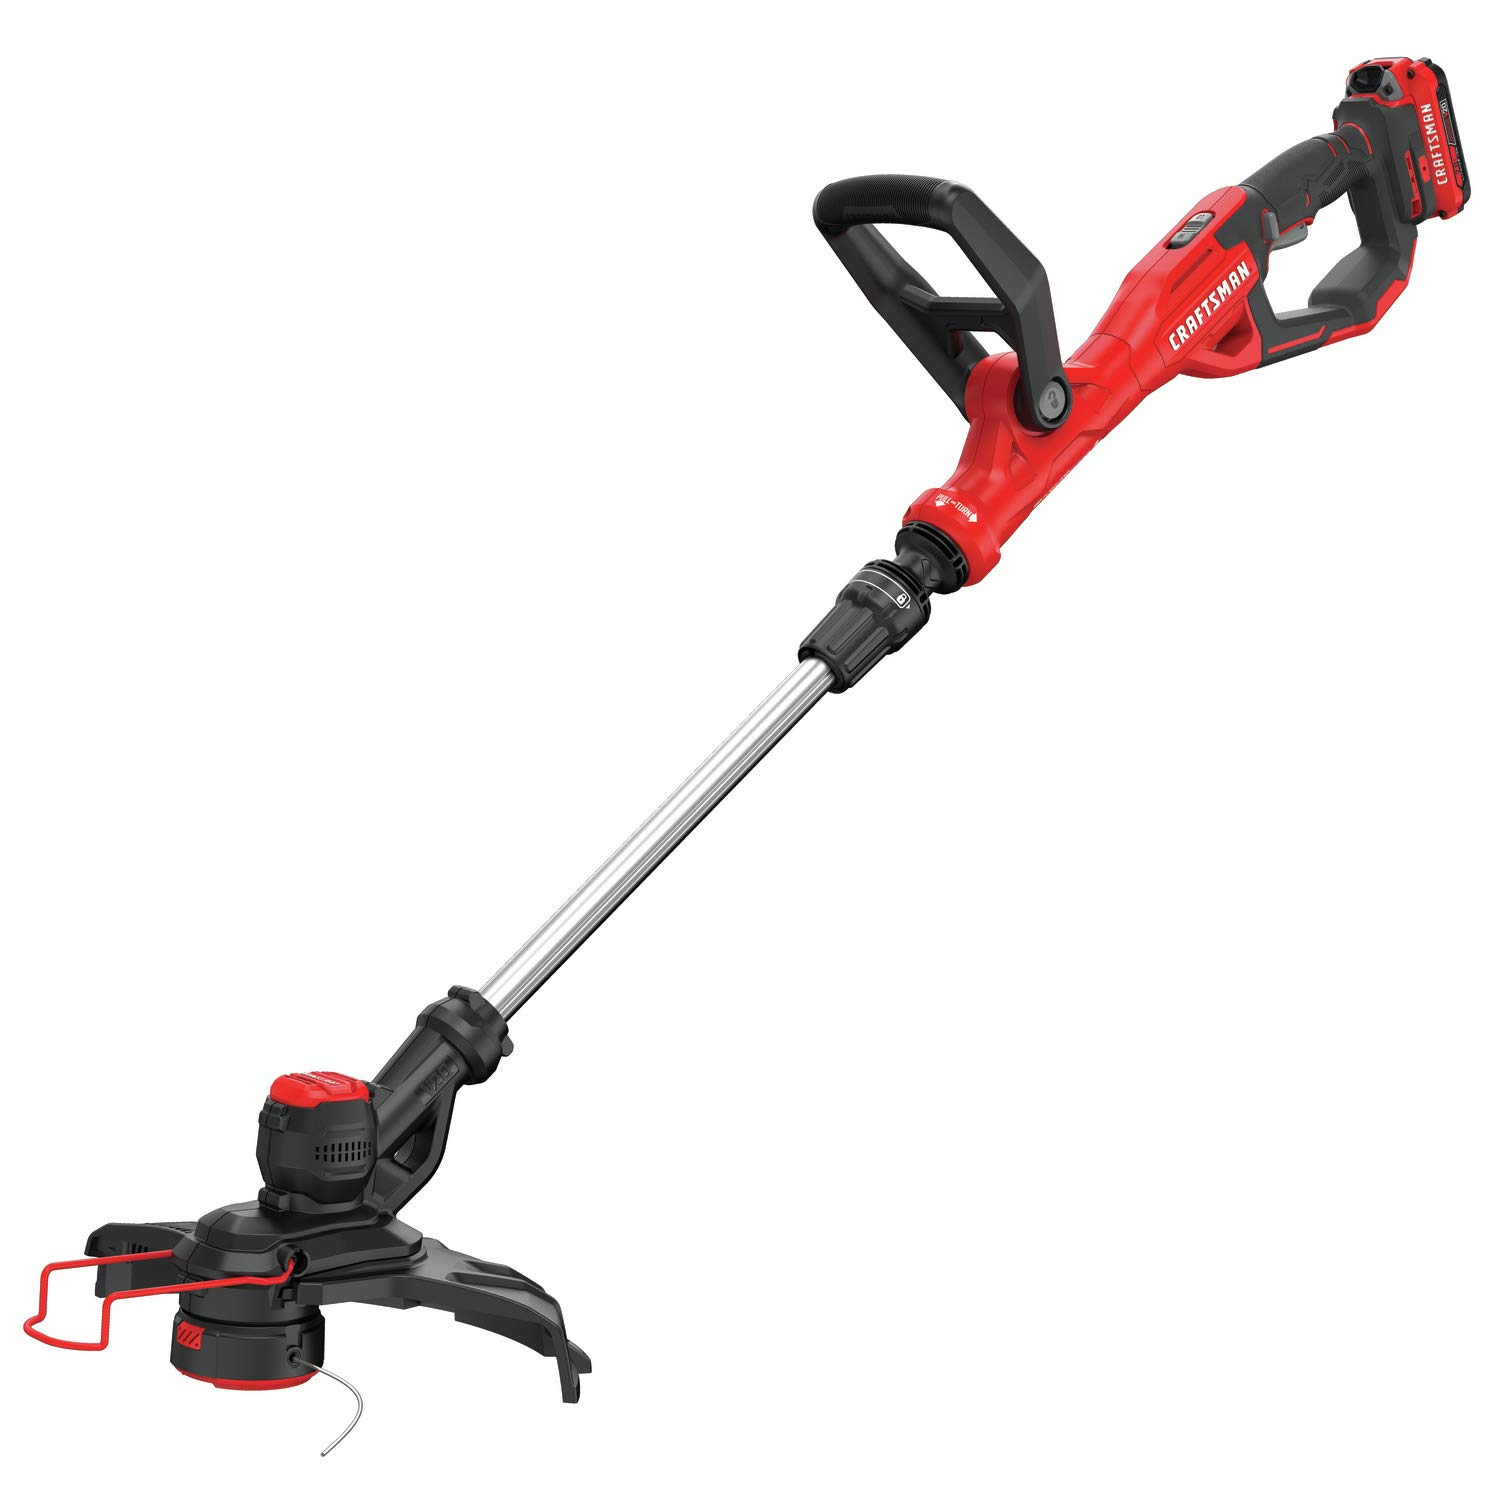 CRAFTSMAN CMCST900D1 String Trimmers & Edgers, Red